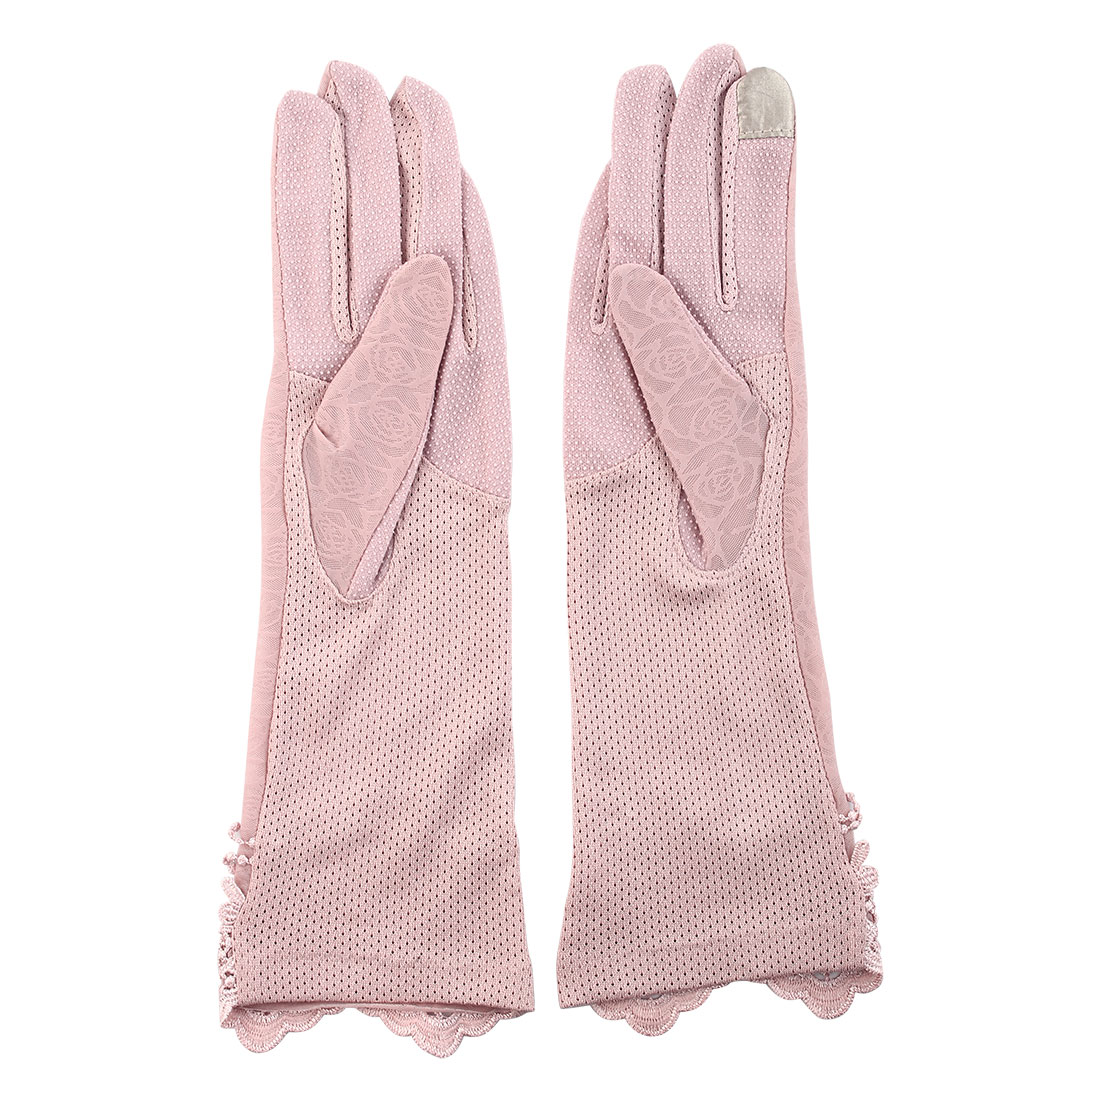 Outdoor Travel Driving Flower Butterfly Decor Full Finger Non-slip Sun Resistant Gloves Pink Pair for Women